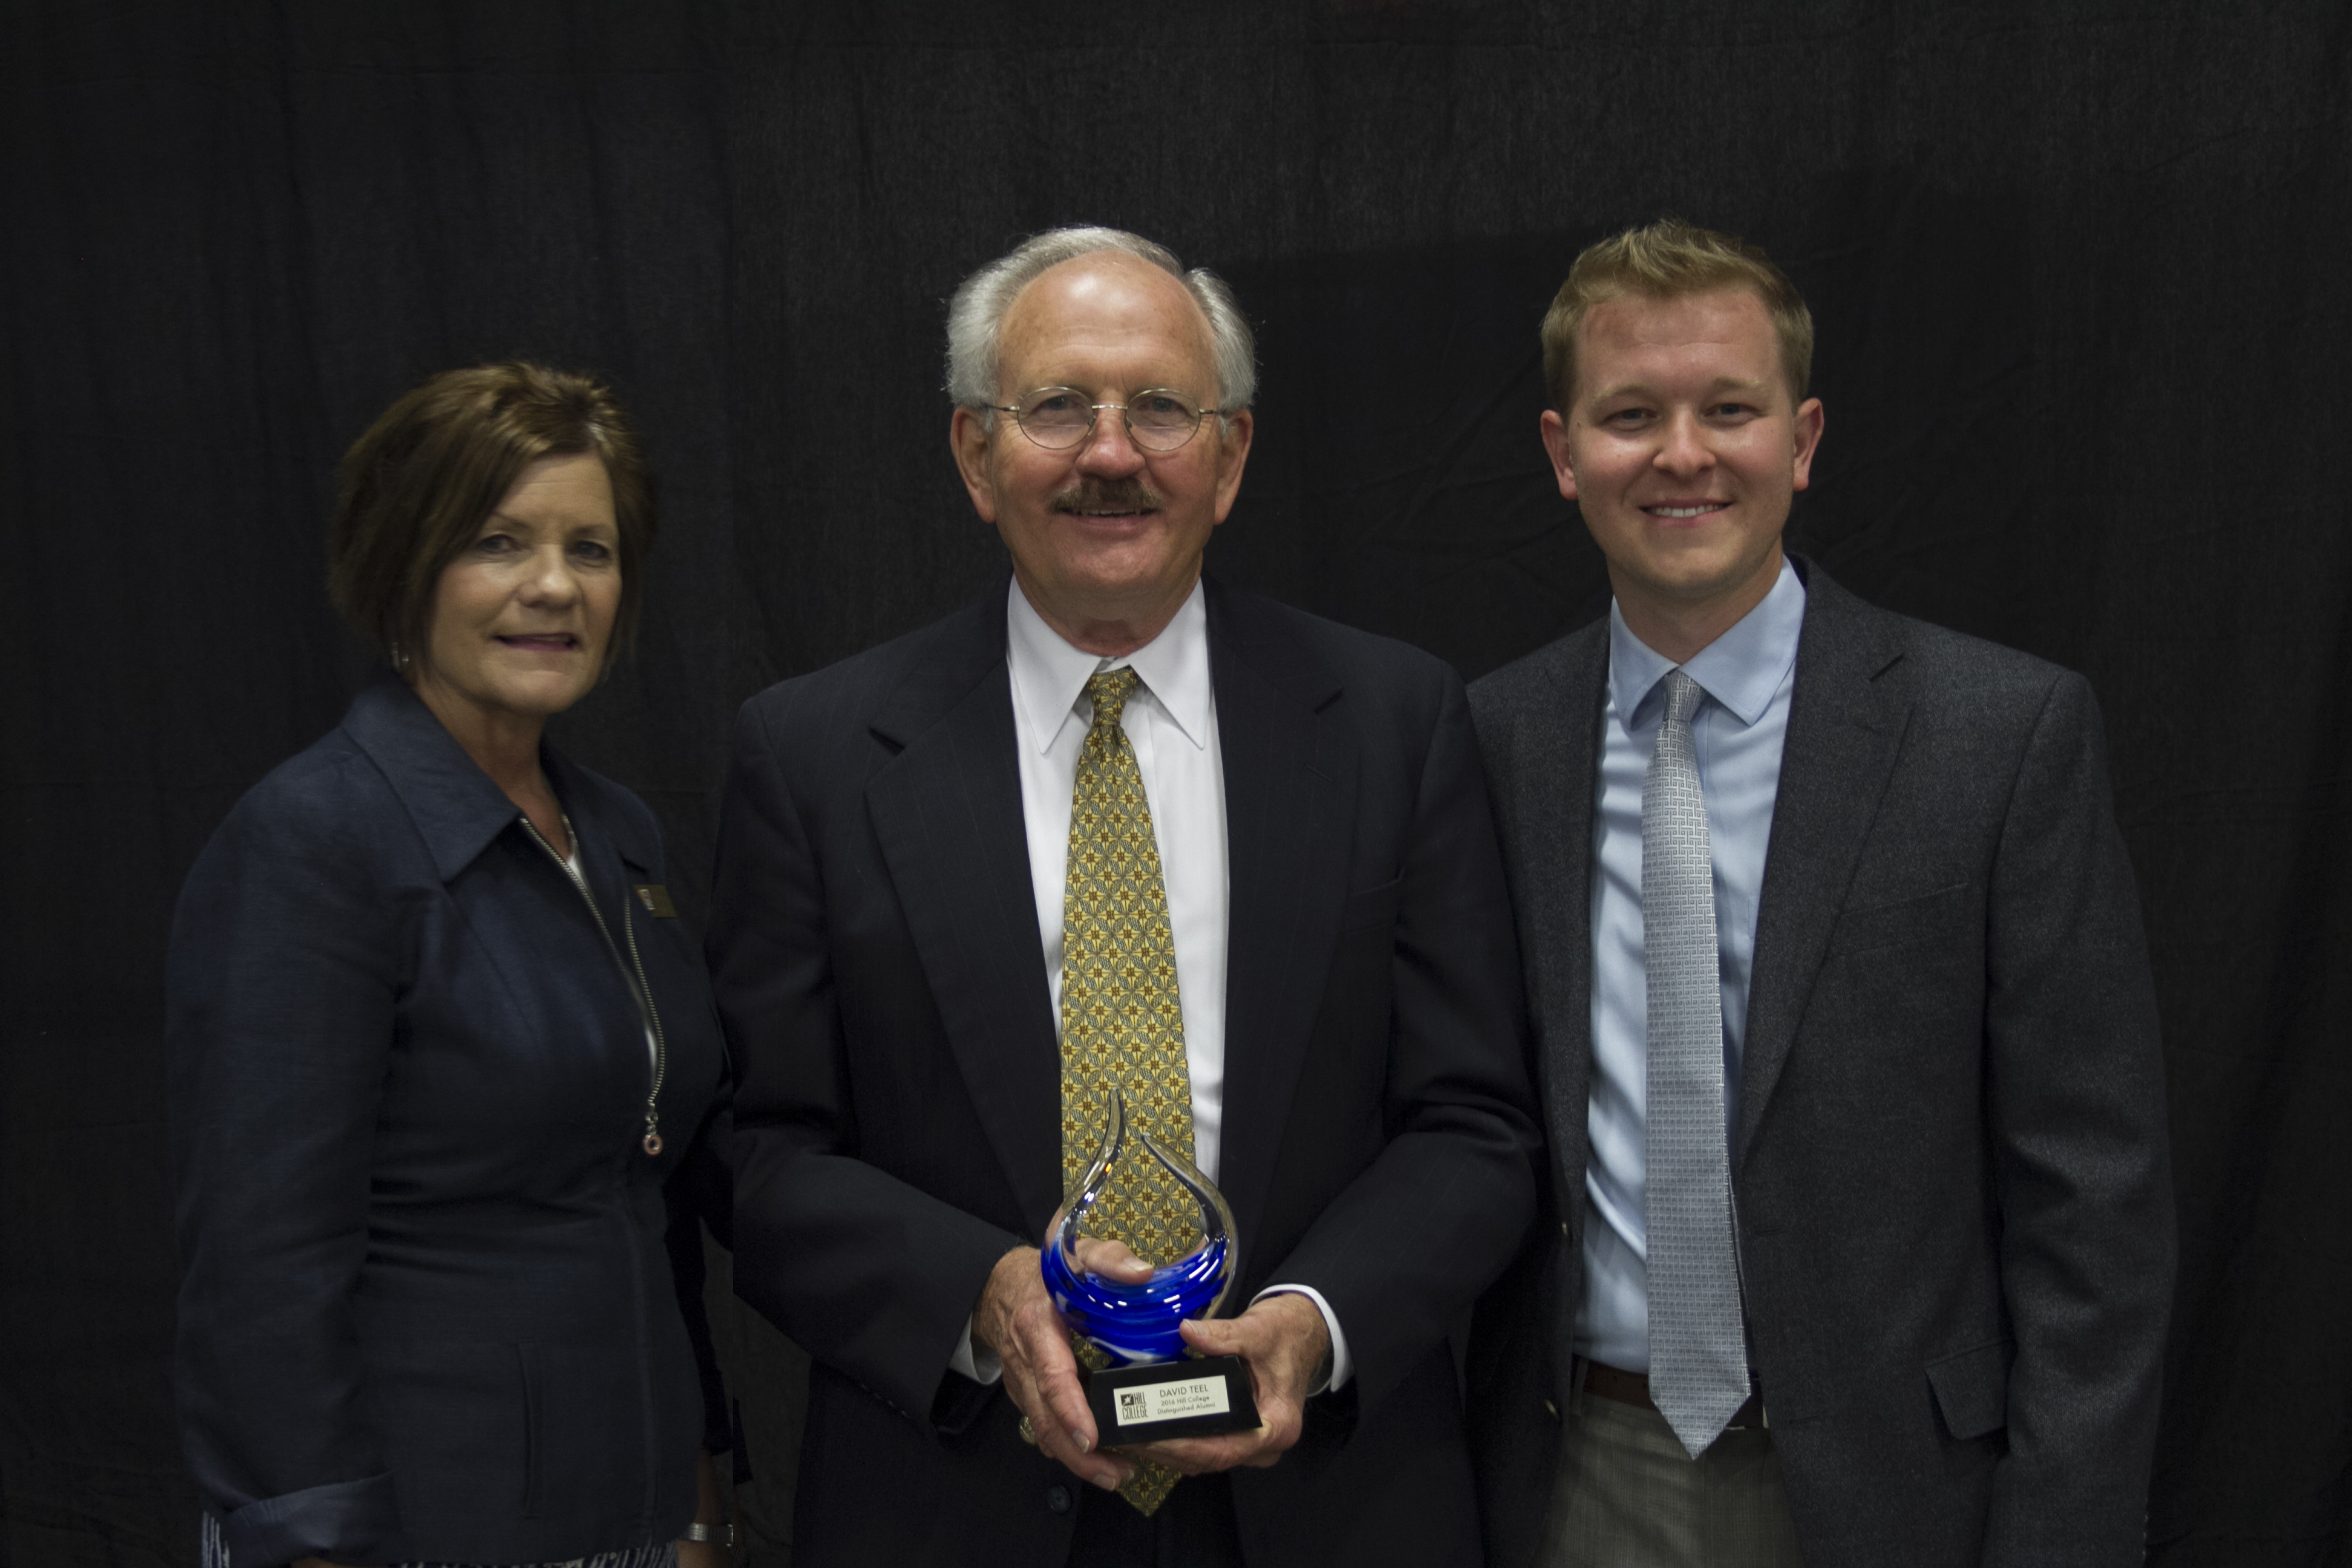 Pictured (from left) are Hill College President Dr. Pam Boehm, Hill College Board President and 2016 Distinguished Alumni recipient David Teel, and Hill College Associate Director of Development Preston McReynolds (photo by TONI REJCEK).